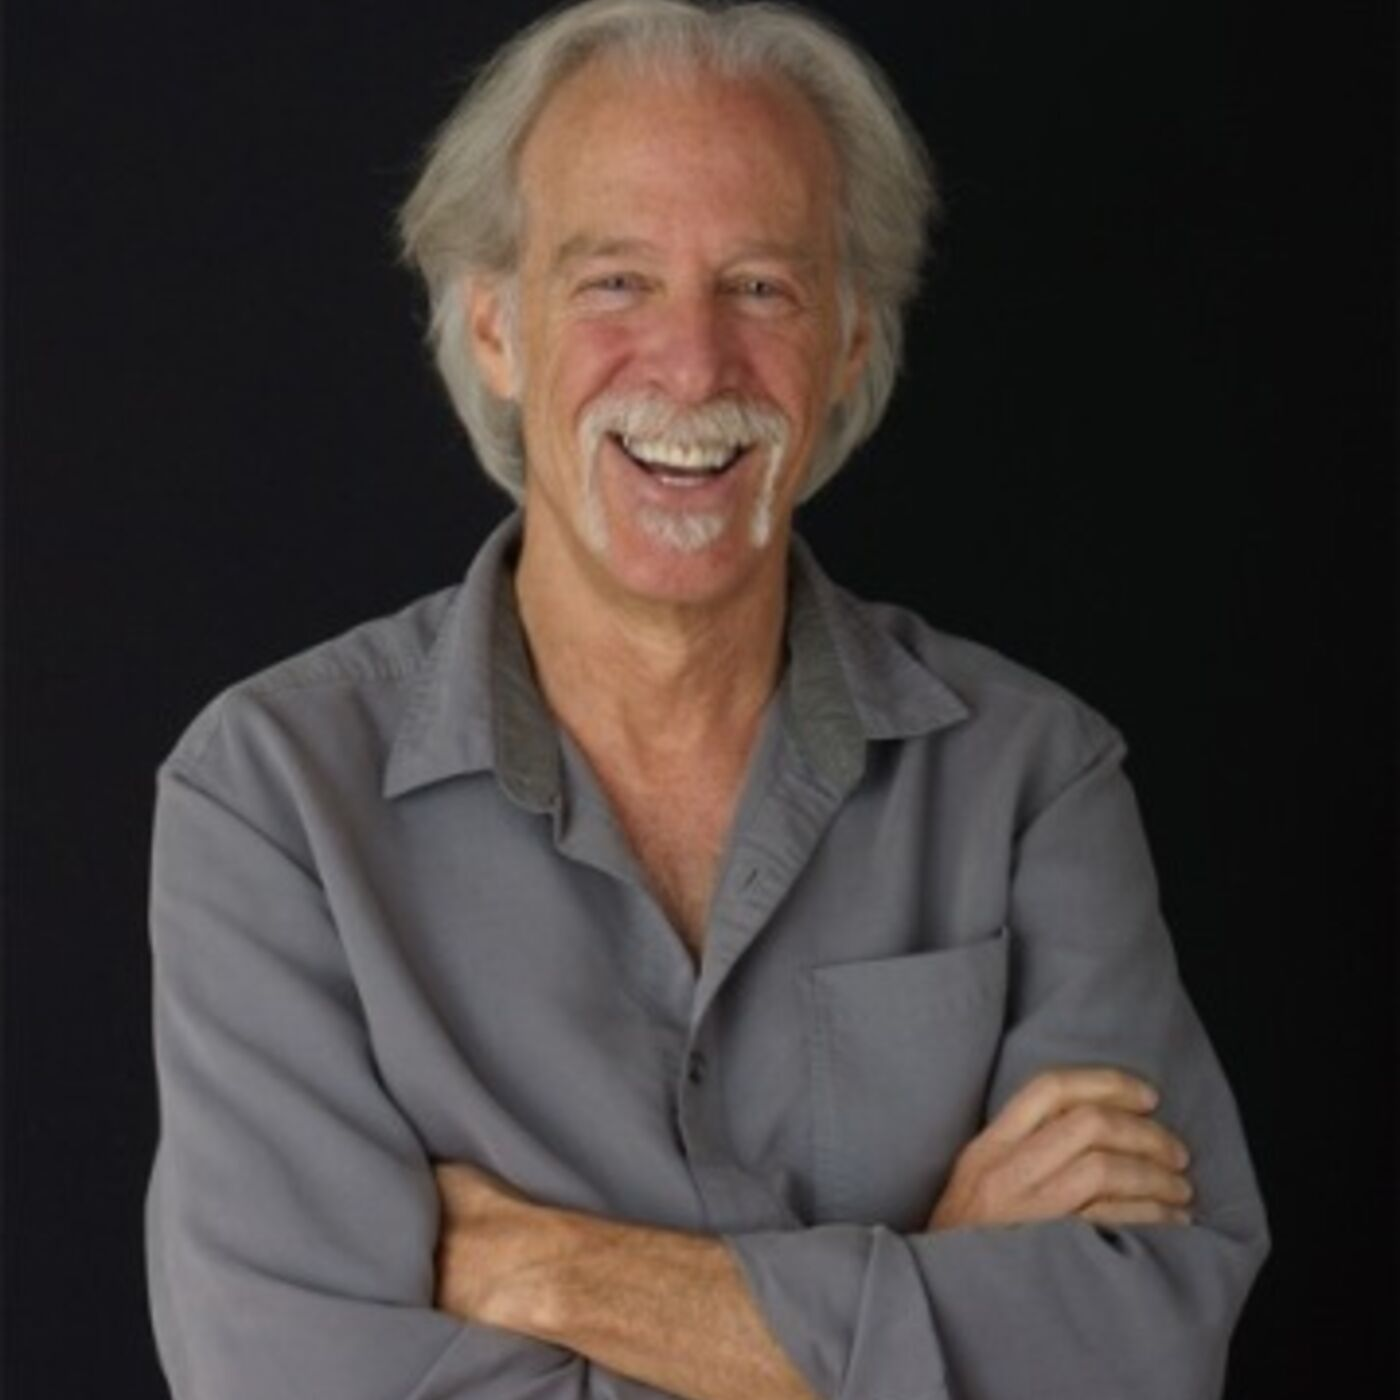 Finding Our Purpose... Living an Authentic Life - Gregg Levoy (Episode #140)